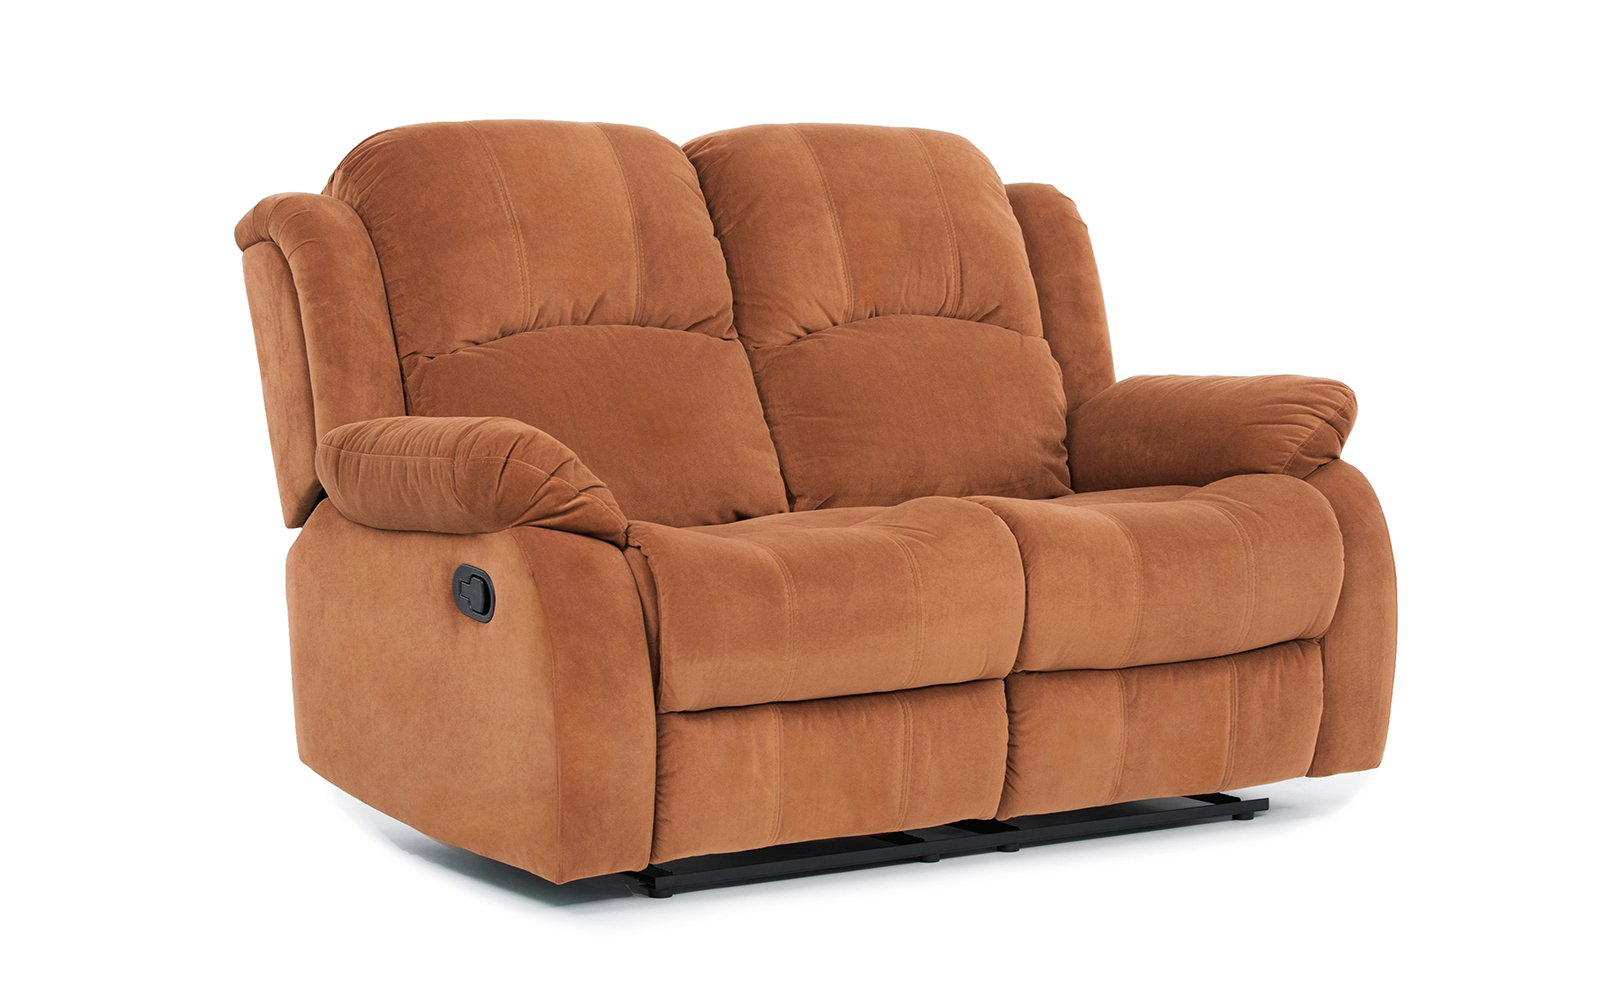 Classic and Traditional Brown Brush Microfiber Recliner Chair, Love Seat, Sofa Size - 1 Seater, 2 Seater, 3 Seater Set (2 Seater)